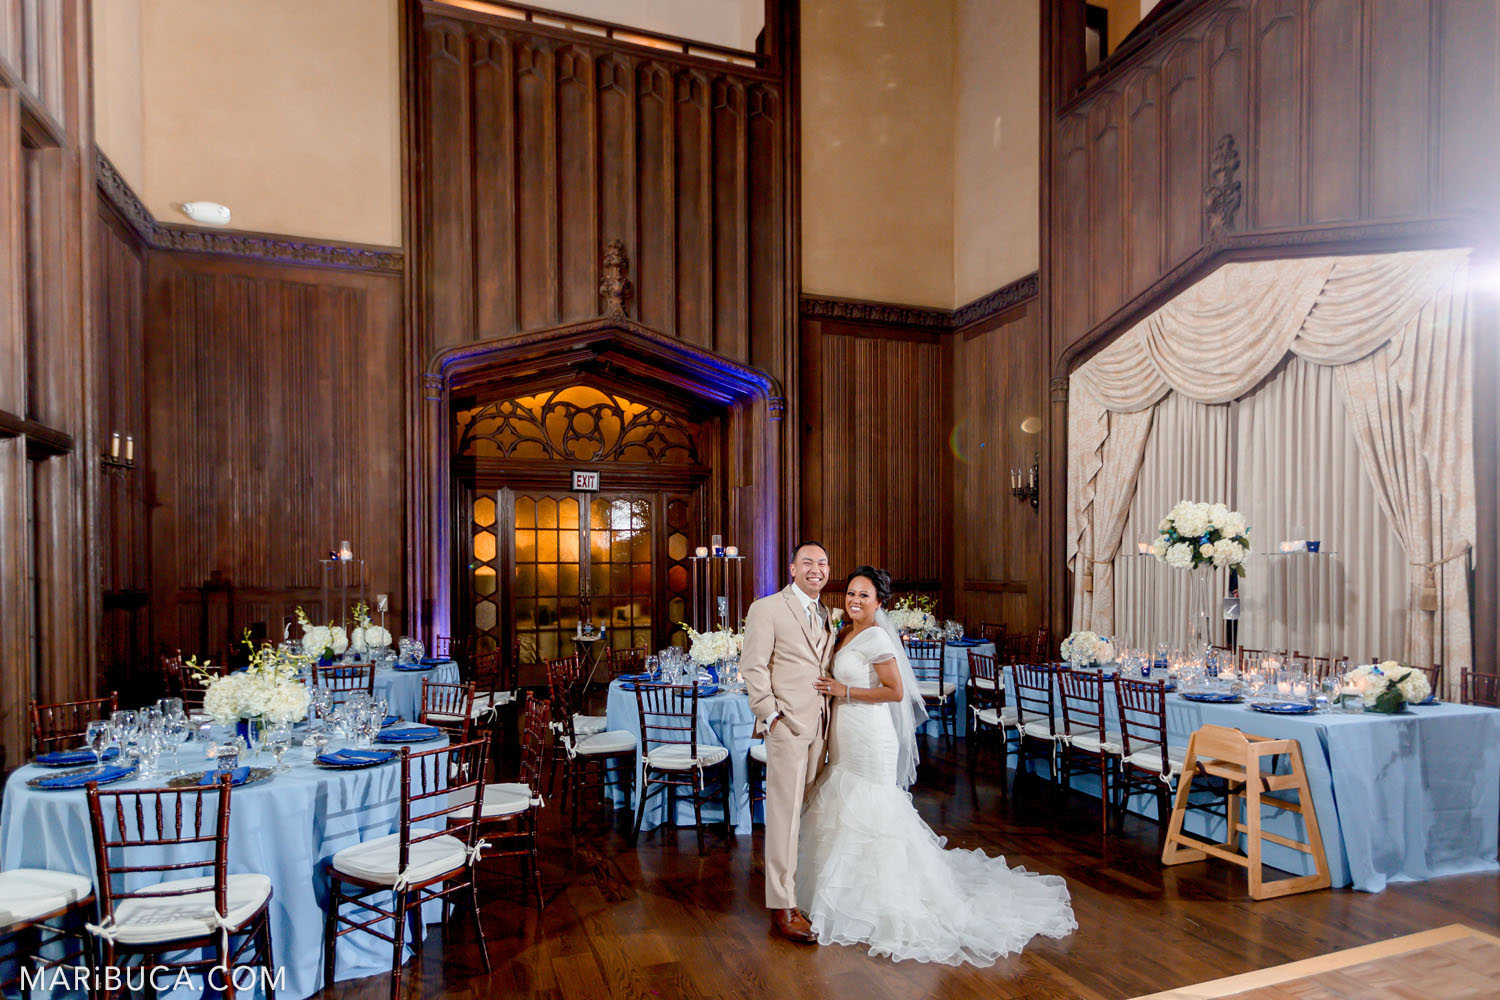 The bride and the groom enjoy each other in the Great Hall, Kohl Mansion, Burlingame